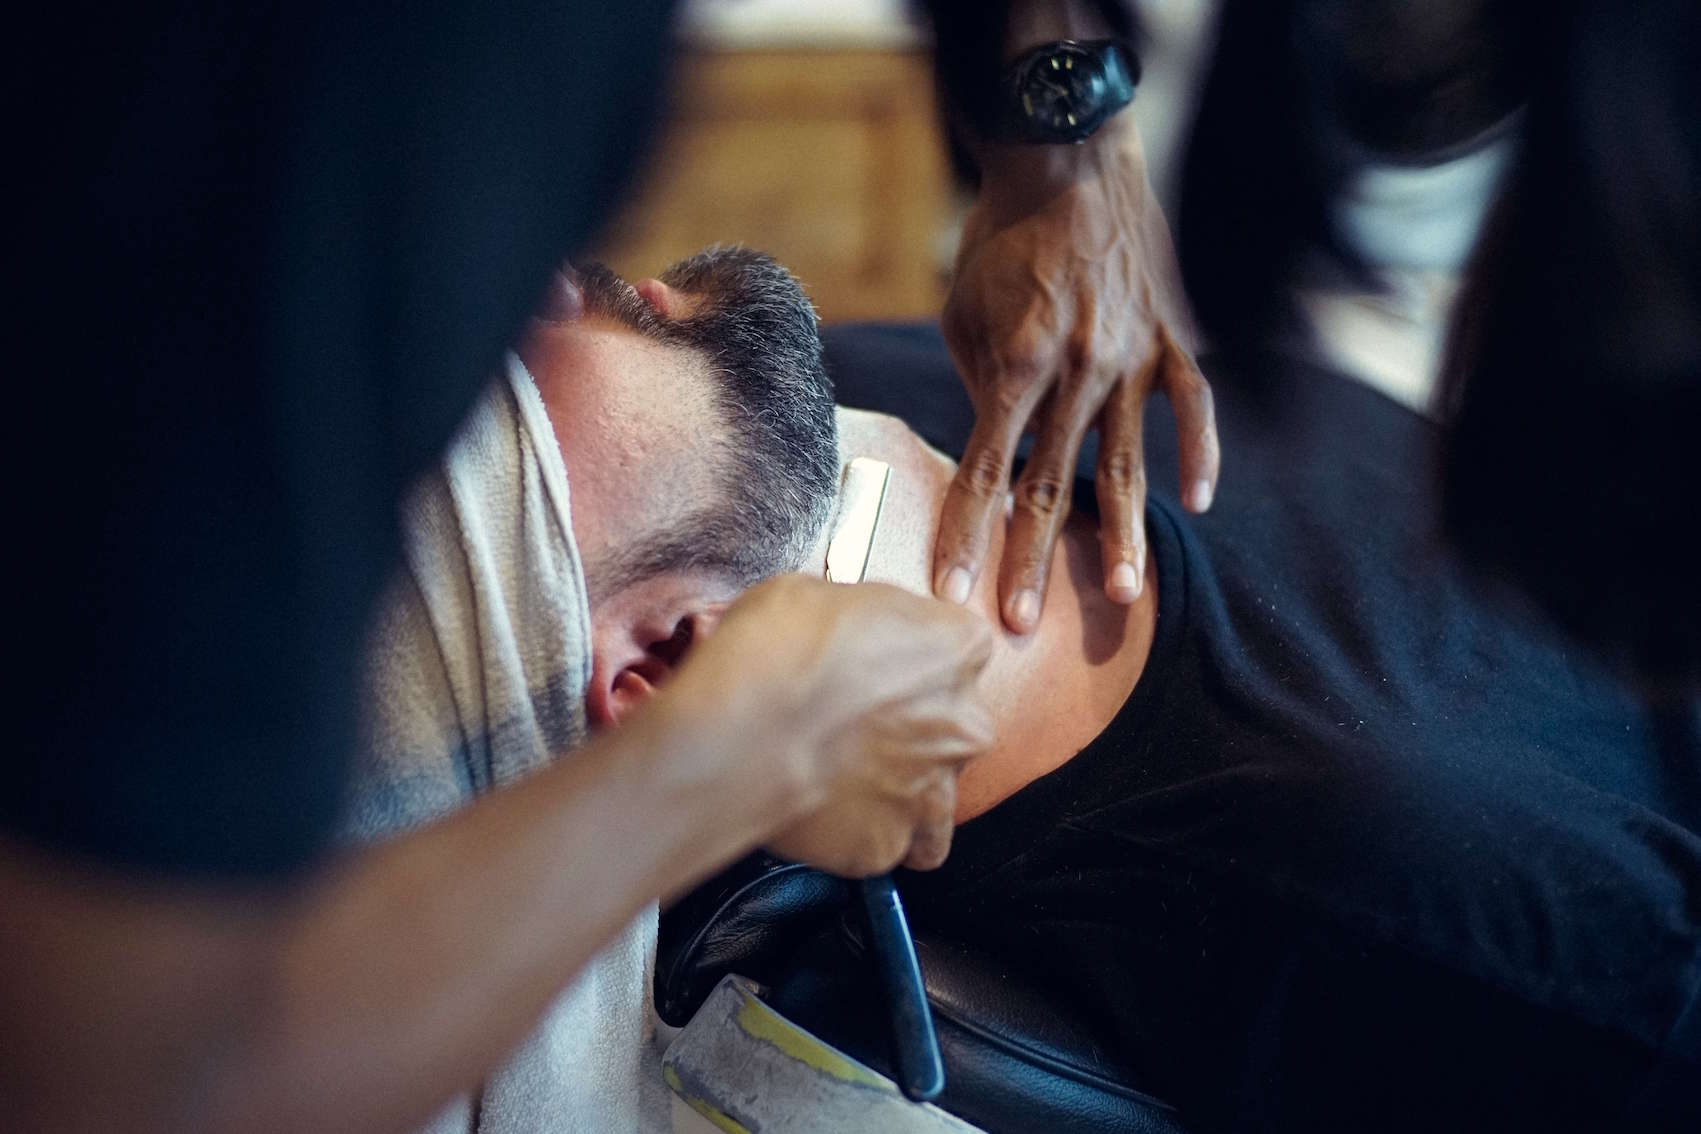 Our guide will help you to achieve a barber-standard shave in the comfort of your home. Shout out @  christoffere   for the image above.